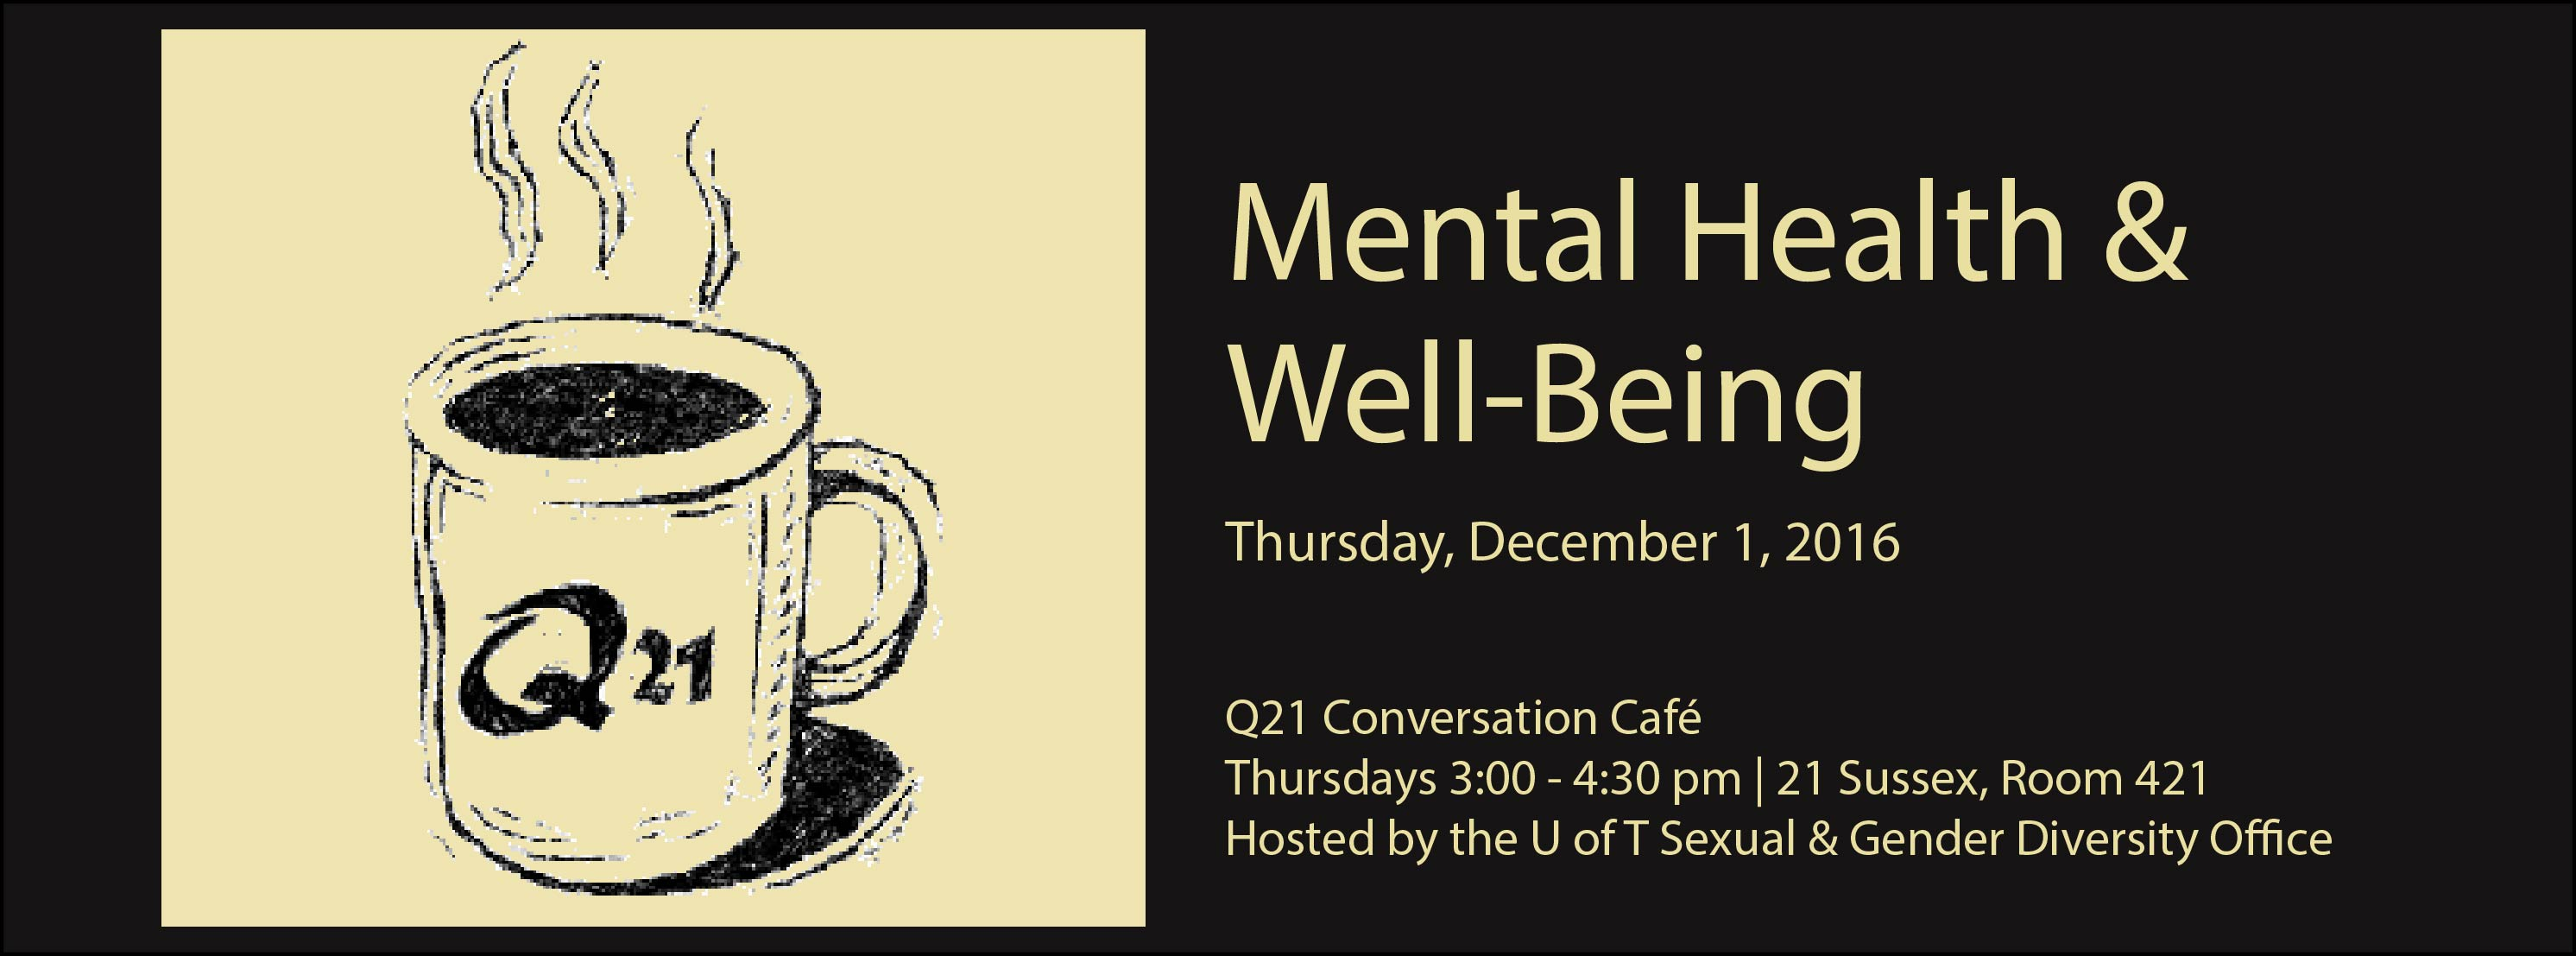 q21-mental-health-well-being